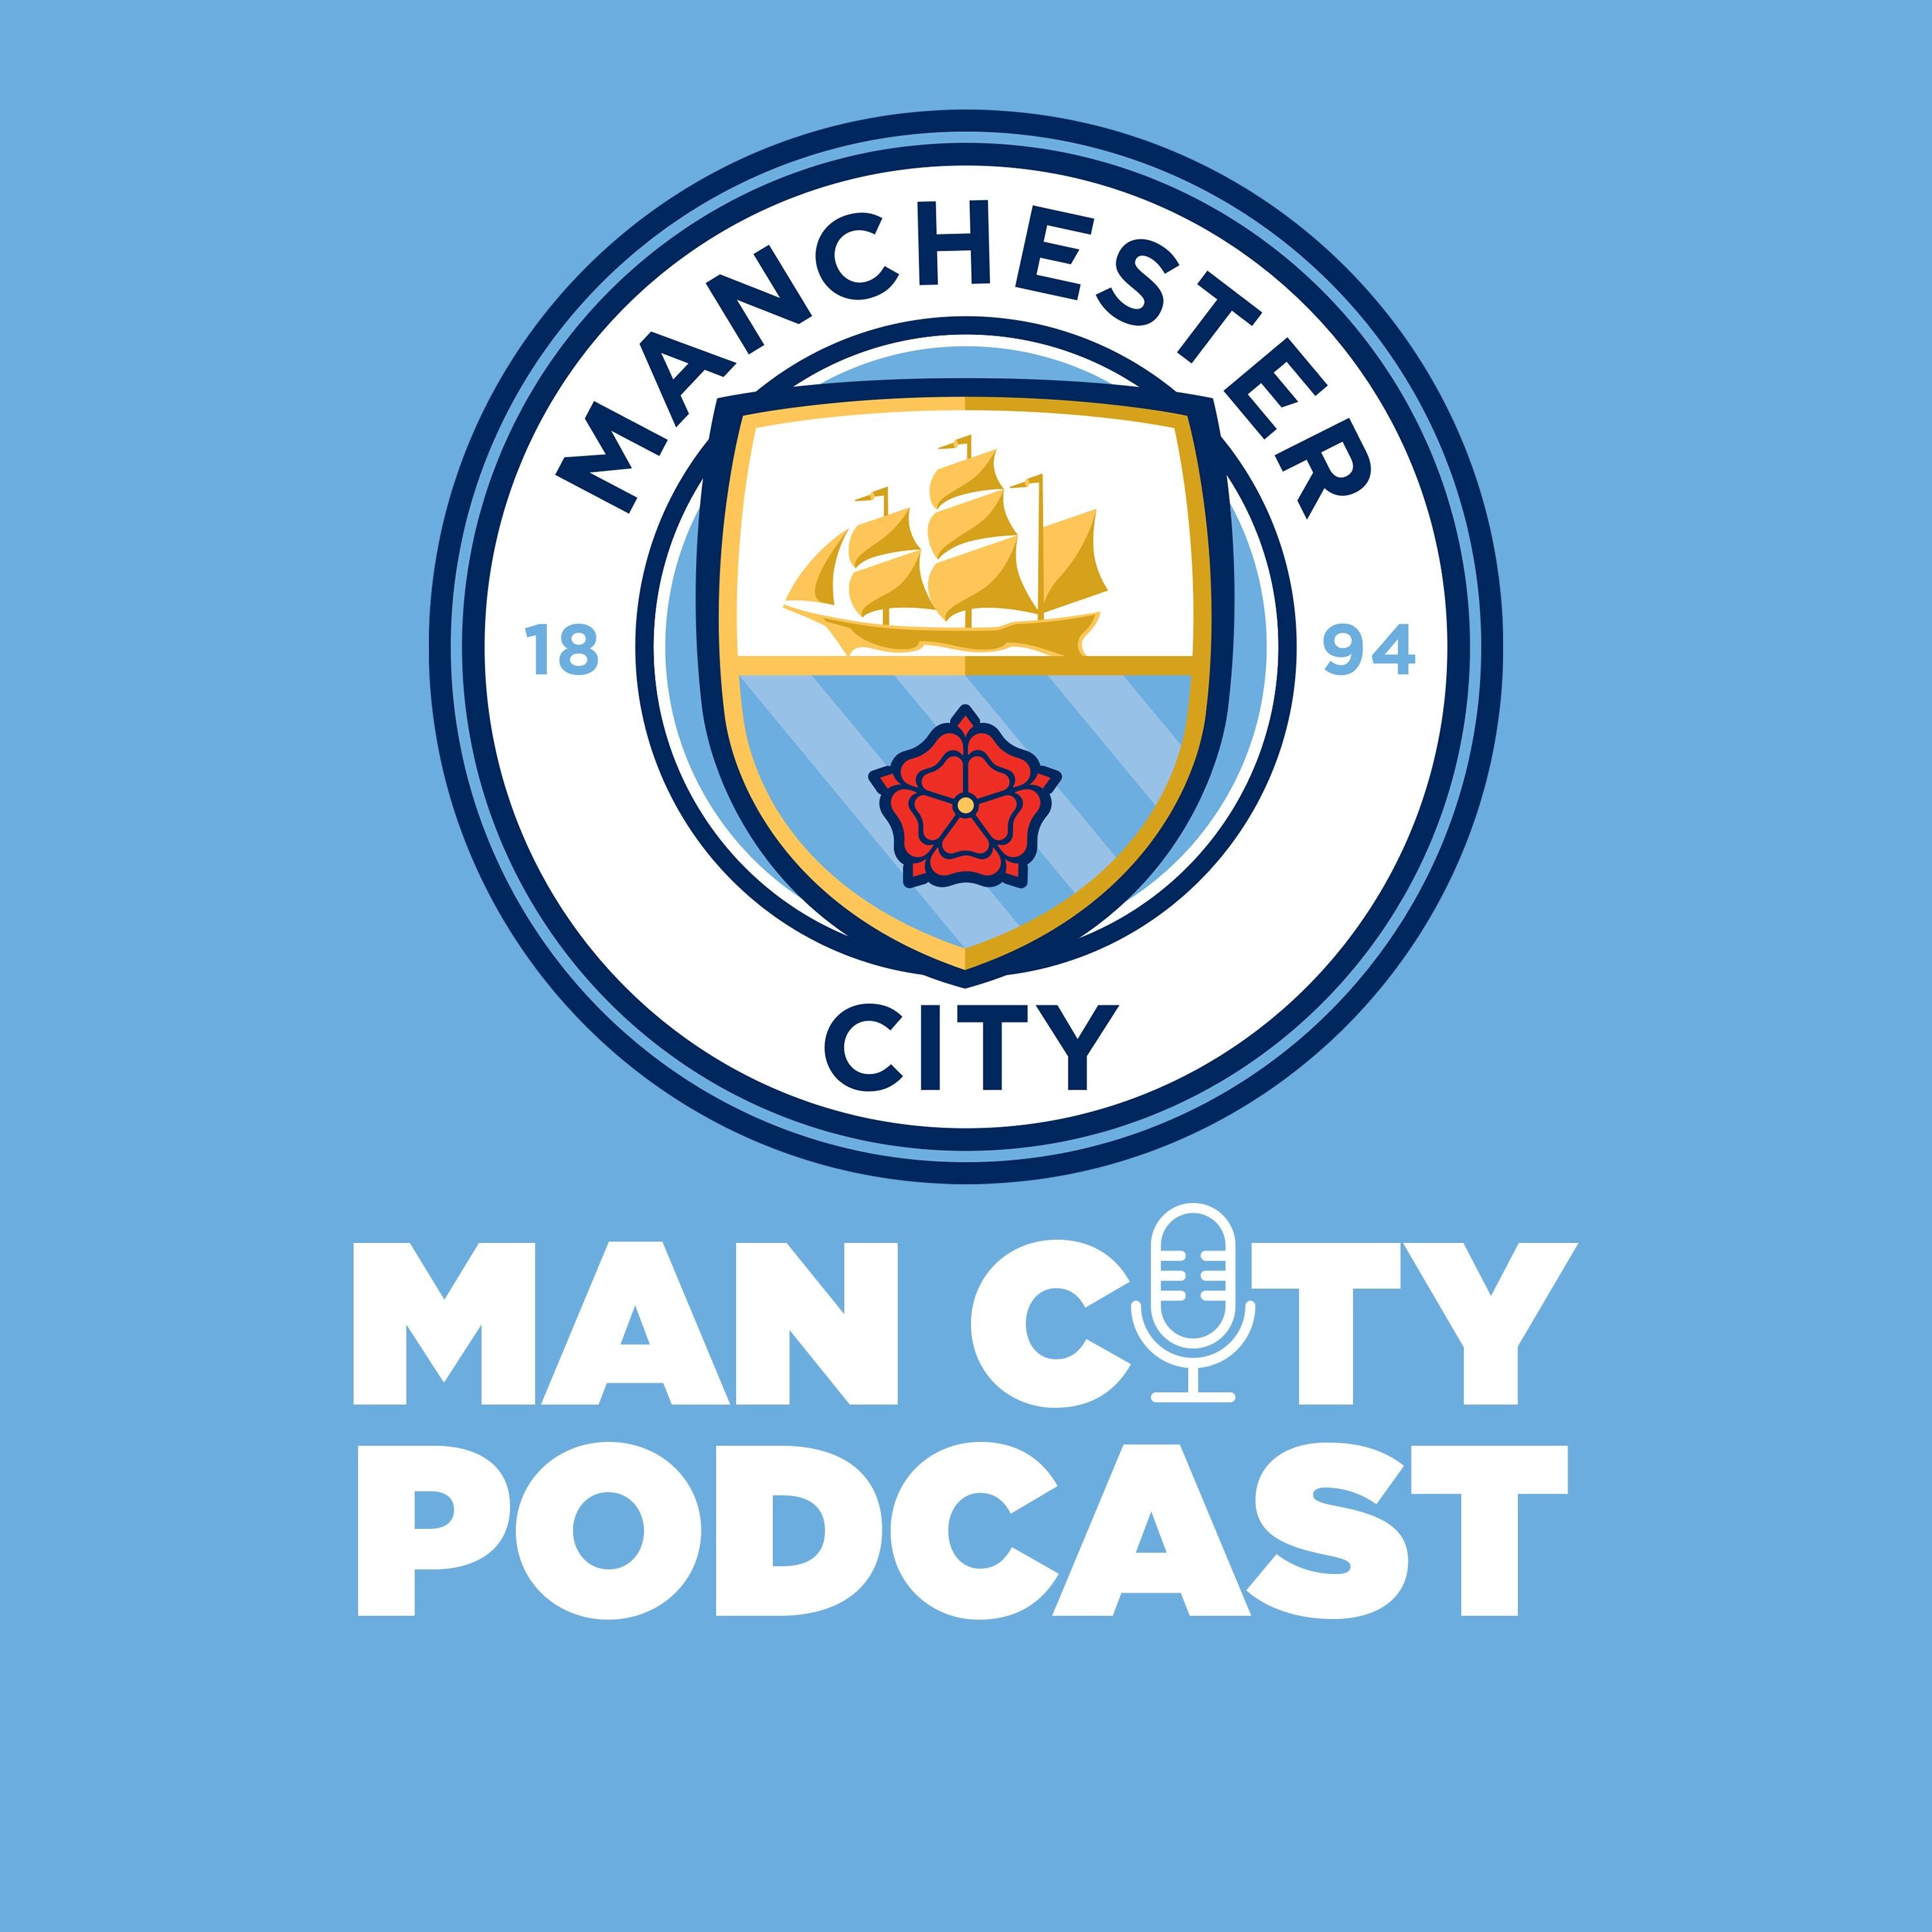 Francis Lee | The Official Man City Podcast